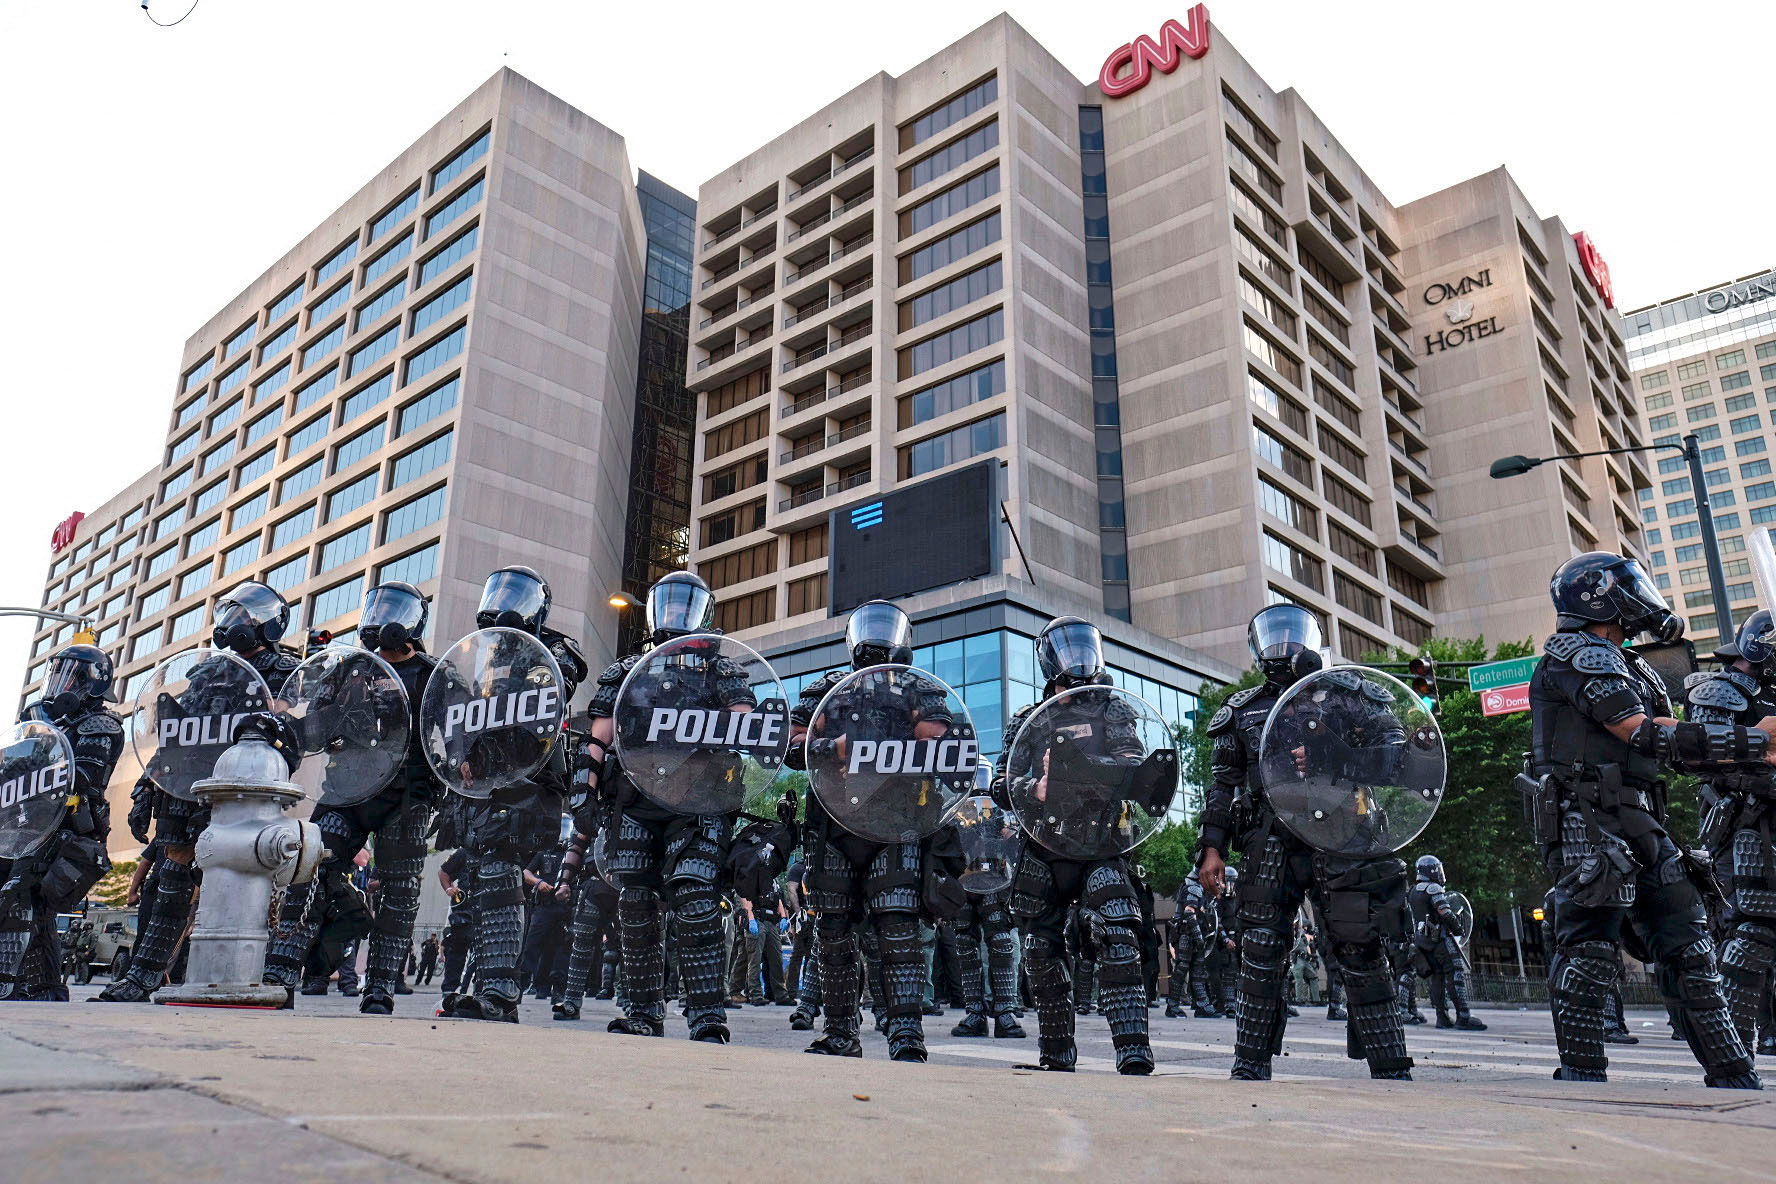 Police stand guard around the CNN Center and Centennial Olympic park as protests continue over the death of George Floyd, Saturday, May 30, 2020, in Atlanta. (Ben Gray/Atlanta Journal-Constitution/AP)